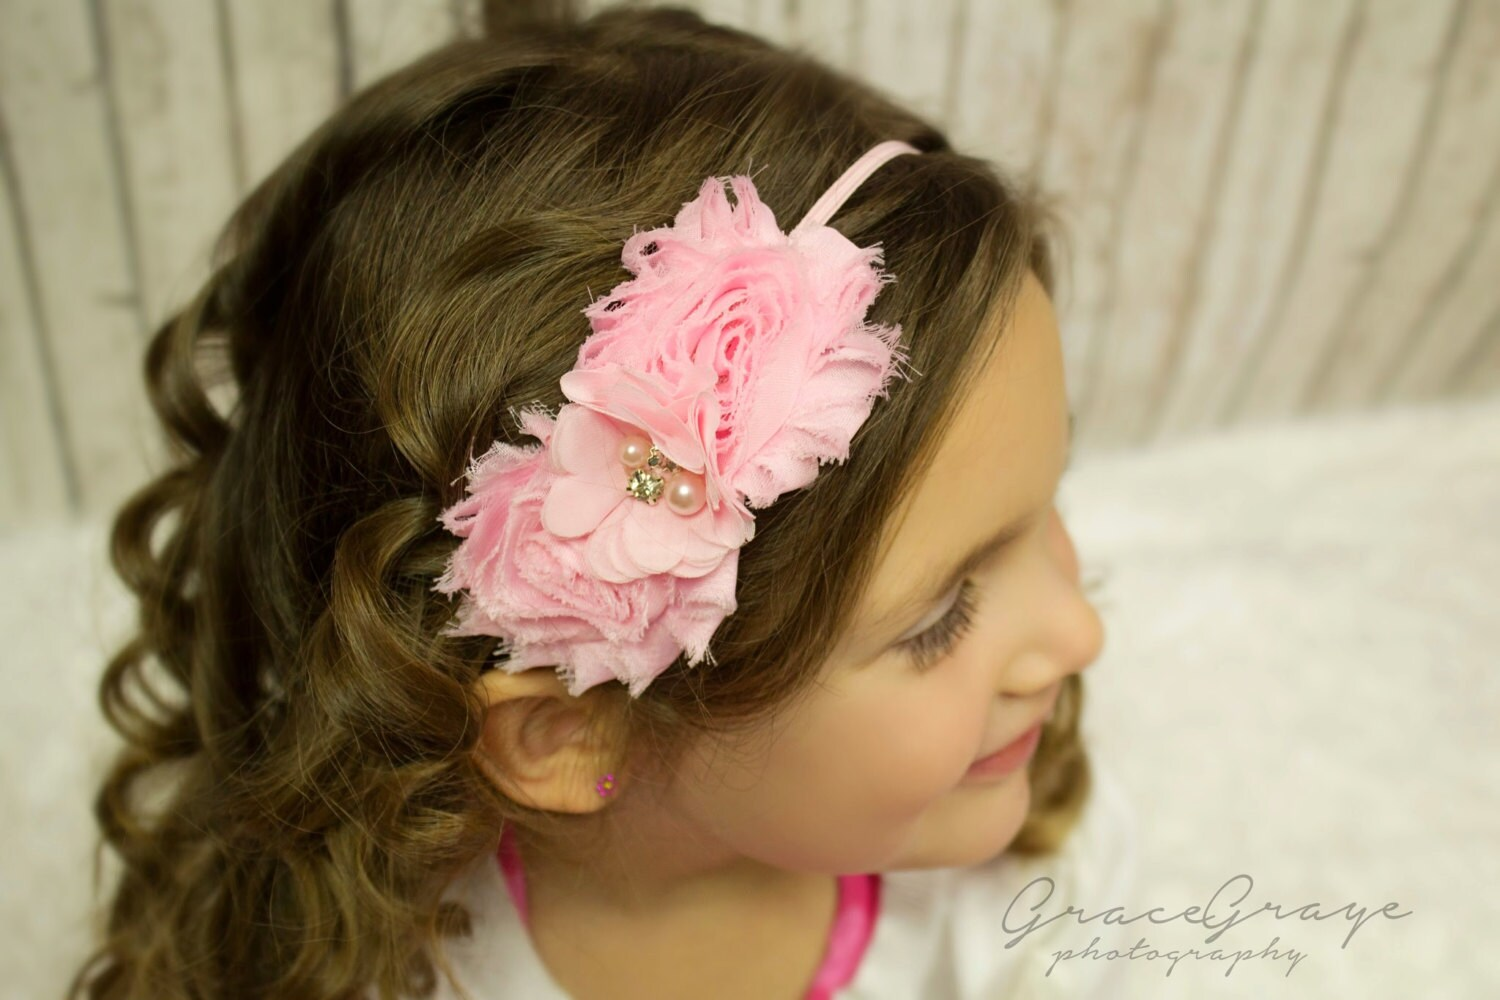 Cute baby headbands with bows are very fashionable for newborn baby girls today, and come in many different styles and materials. These stretchy headbands for babies are made with soft, flexible ribbon or cotton for ultimate comfort, depending on the particular style.